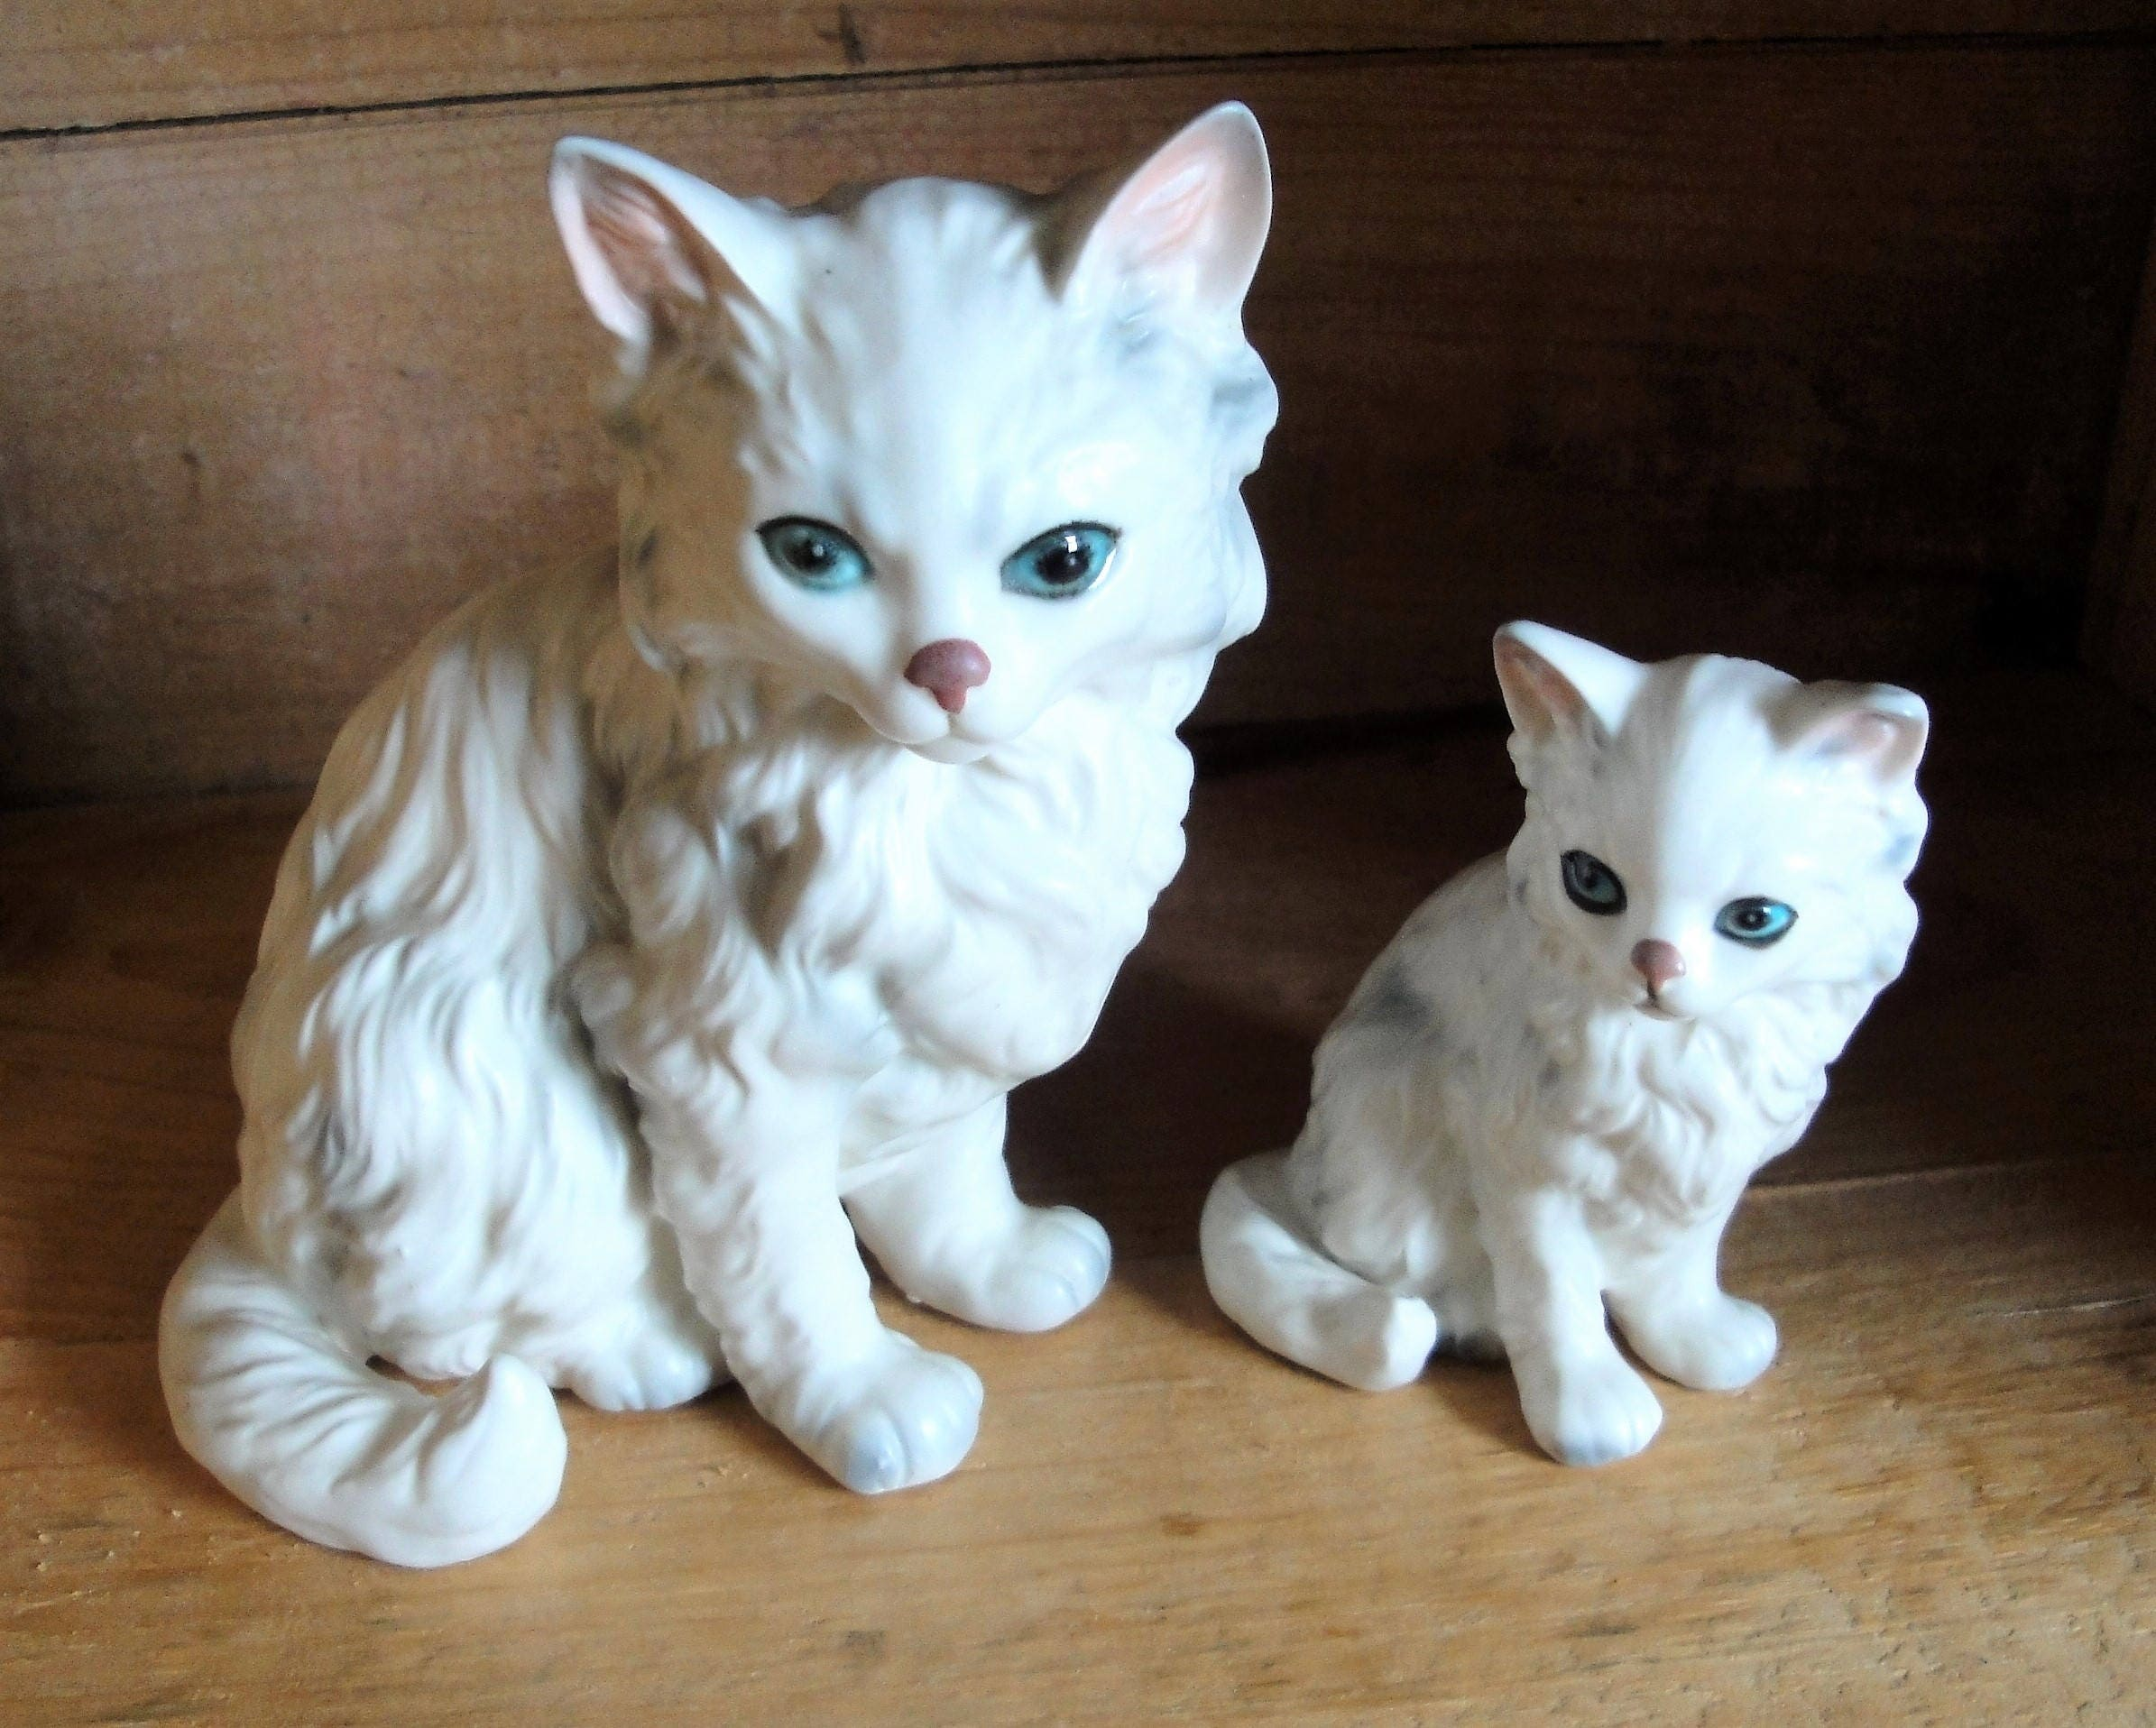 c96d05cb5dce4 Vintage Lefton White Persian Cat and Kitten Figurines